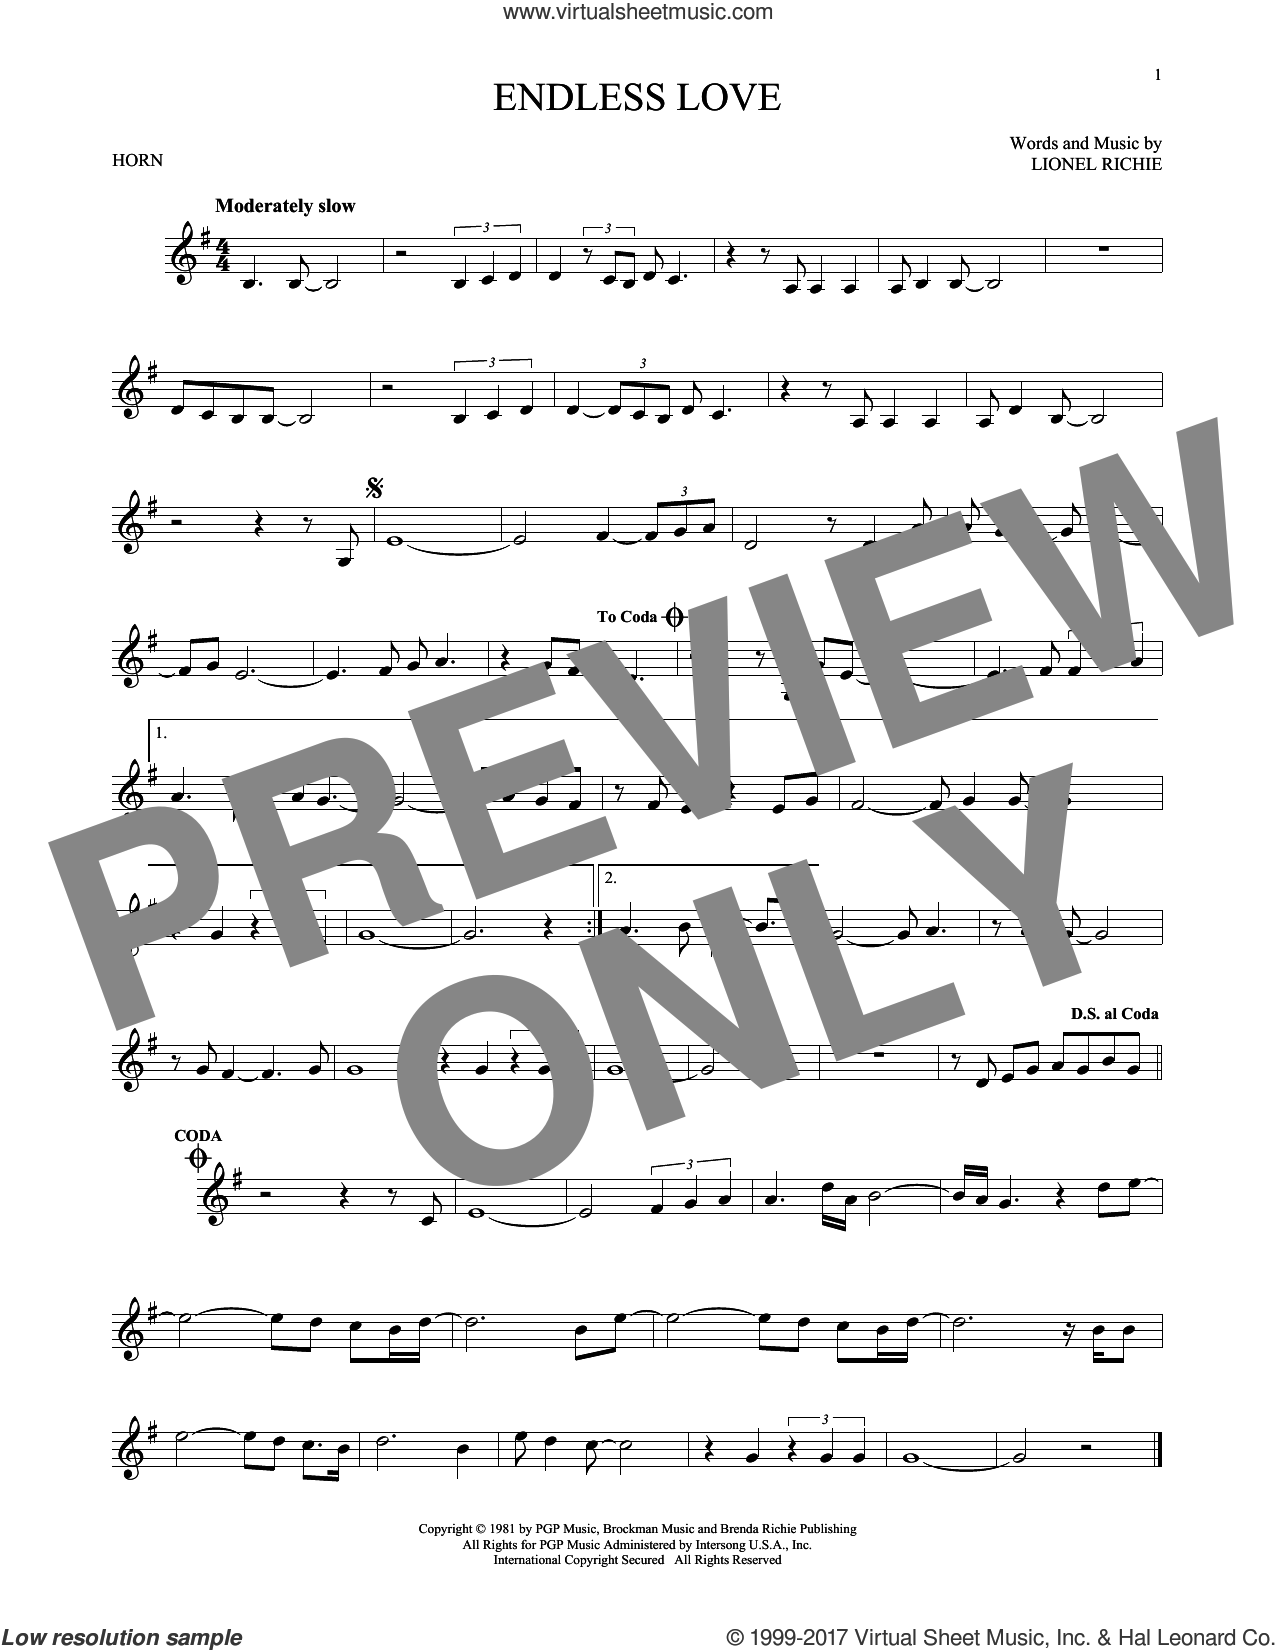 Endless Love sheet music for horn solo by Diana Ross & Lionel Richie and Lionel Richie, intermediate skill level